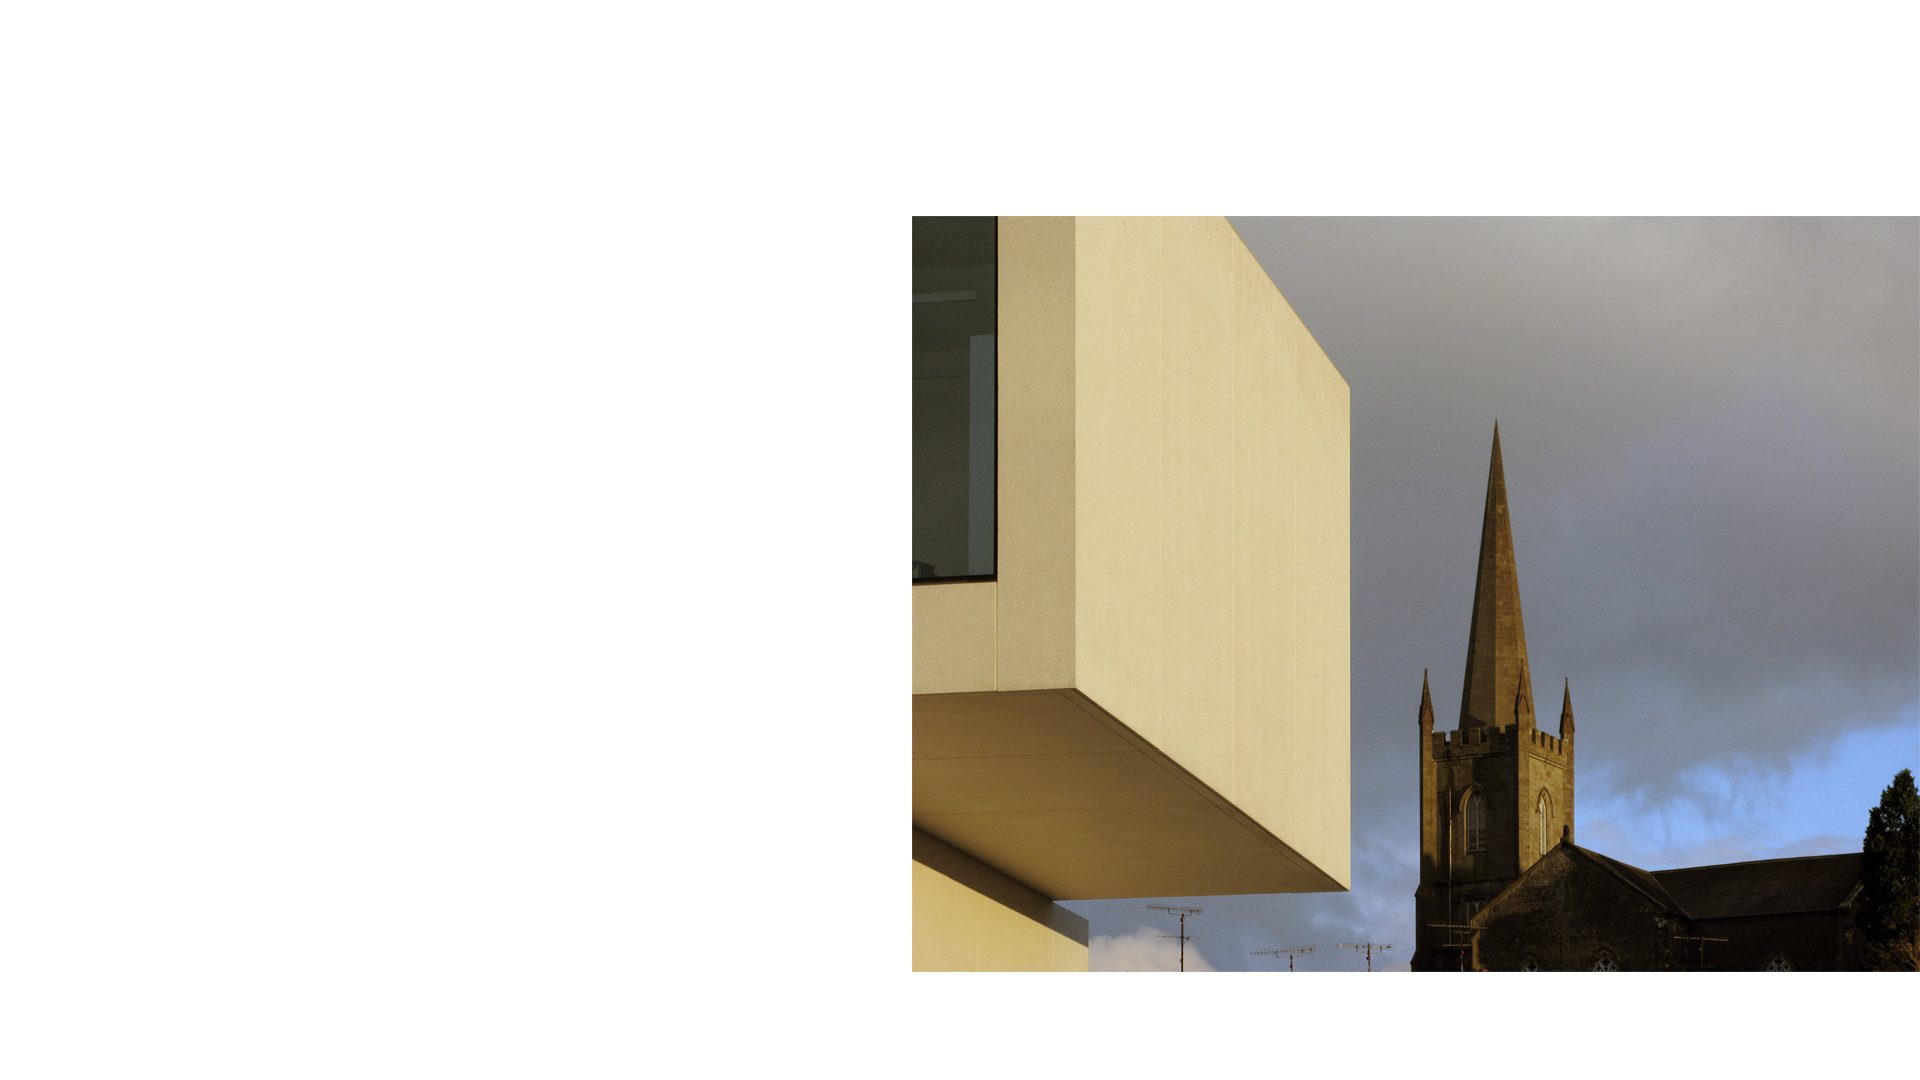 Clones Library and County Library HQ, detail against church spire